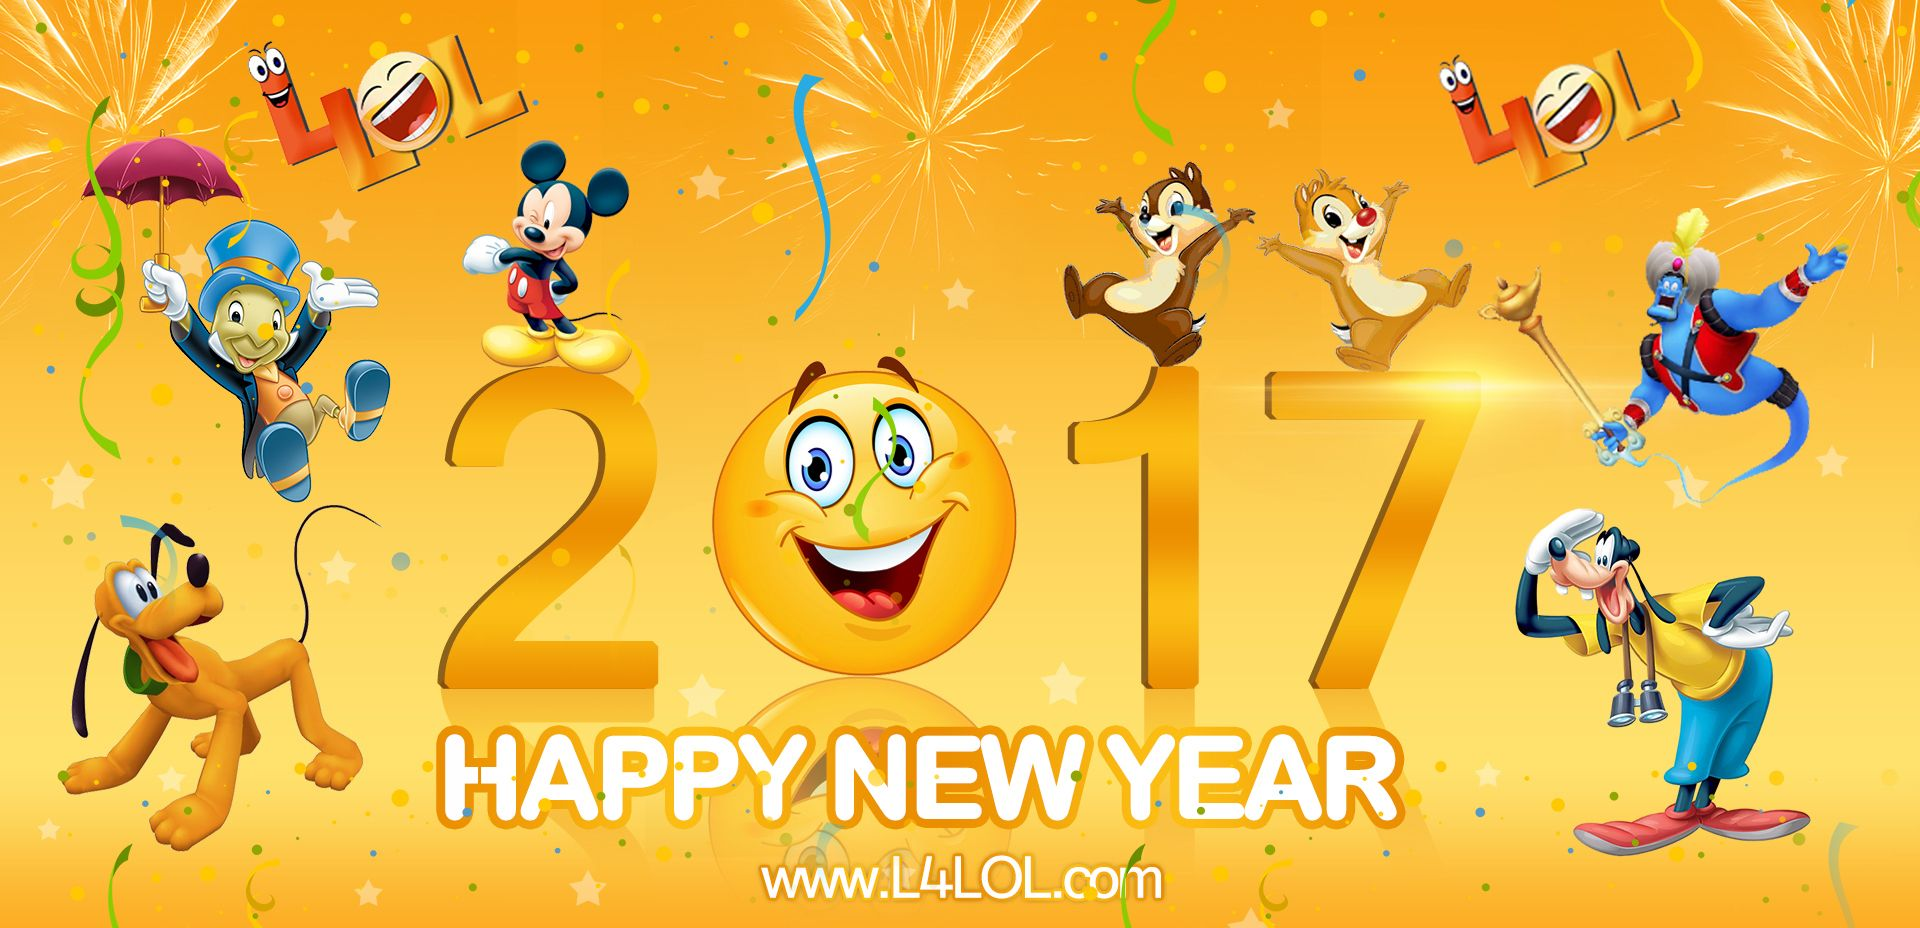 New Year 2017 HD Wallpapers - http://www.welcomehappynewyear2016.com/new-year-2017-hd-wallpapers/ #HappyNewYear2016 #HappyNewYearImages2016 #HappyNewYear2016Photos #HappyNewYear2016Quotes